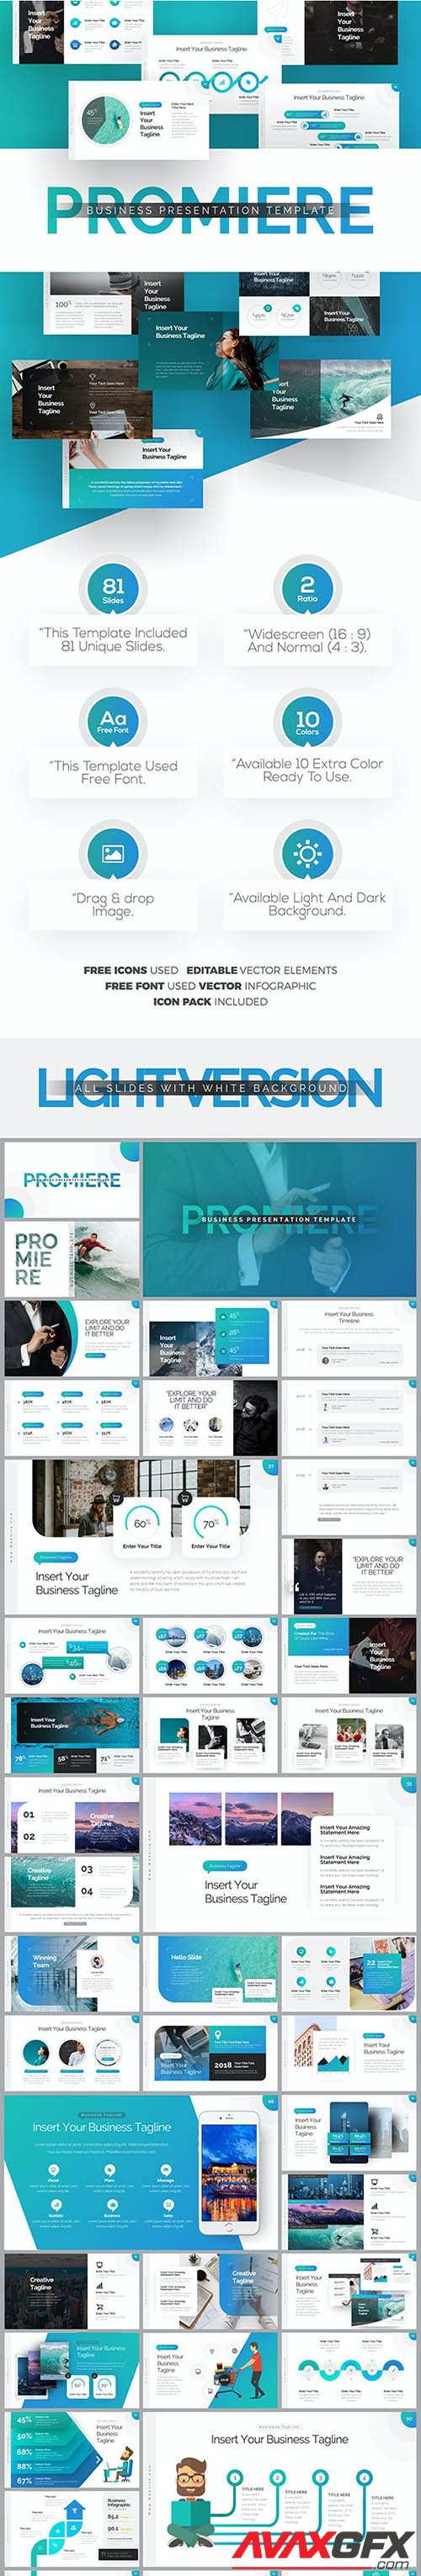 Promiere Business Keynote Presentation Template